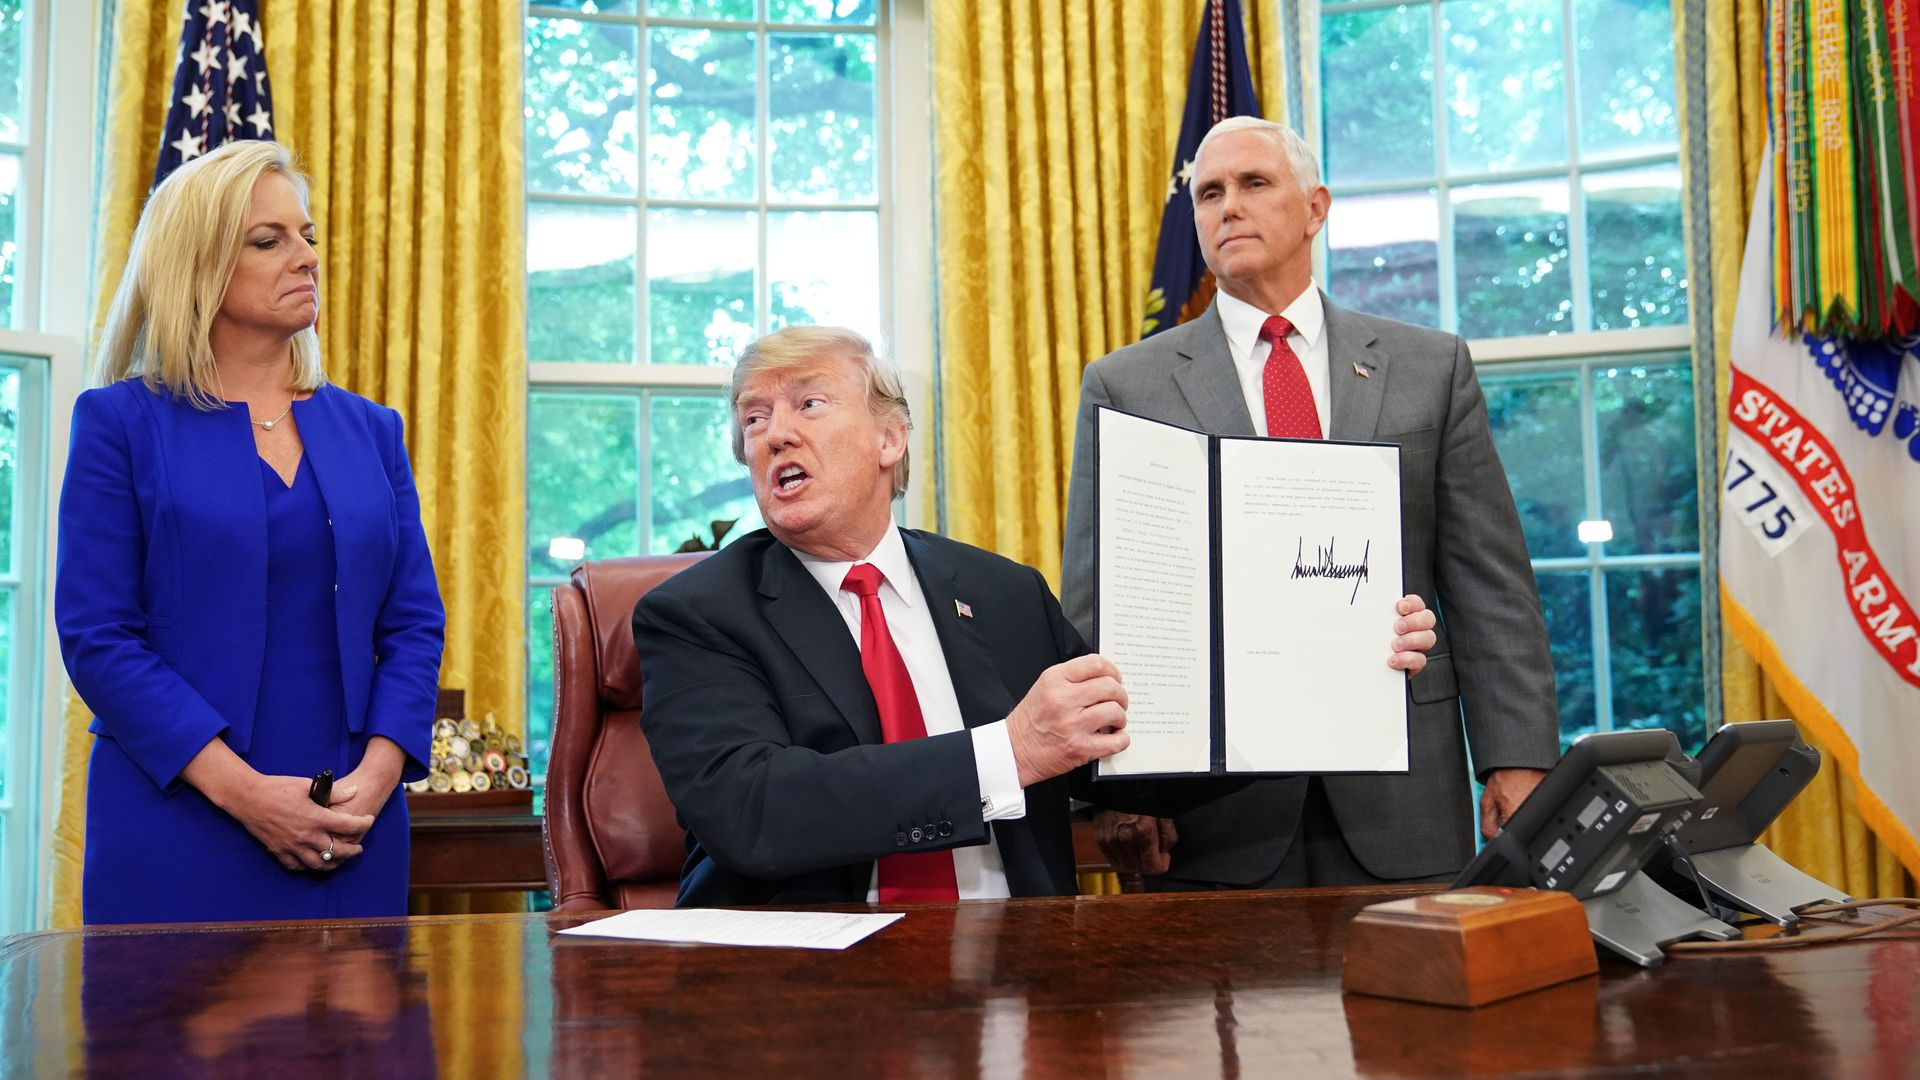 President Trump holding up a signed executive order on immigration